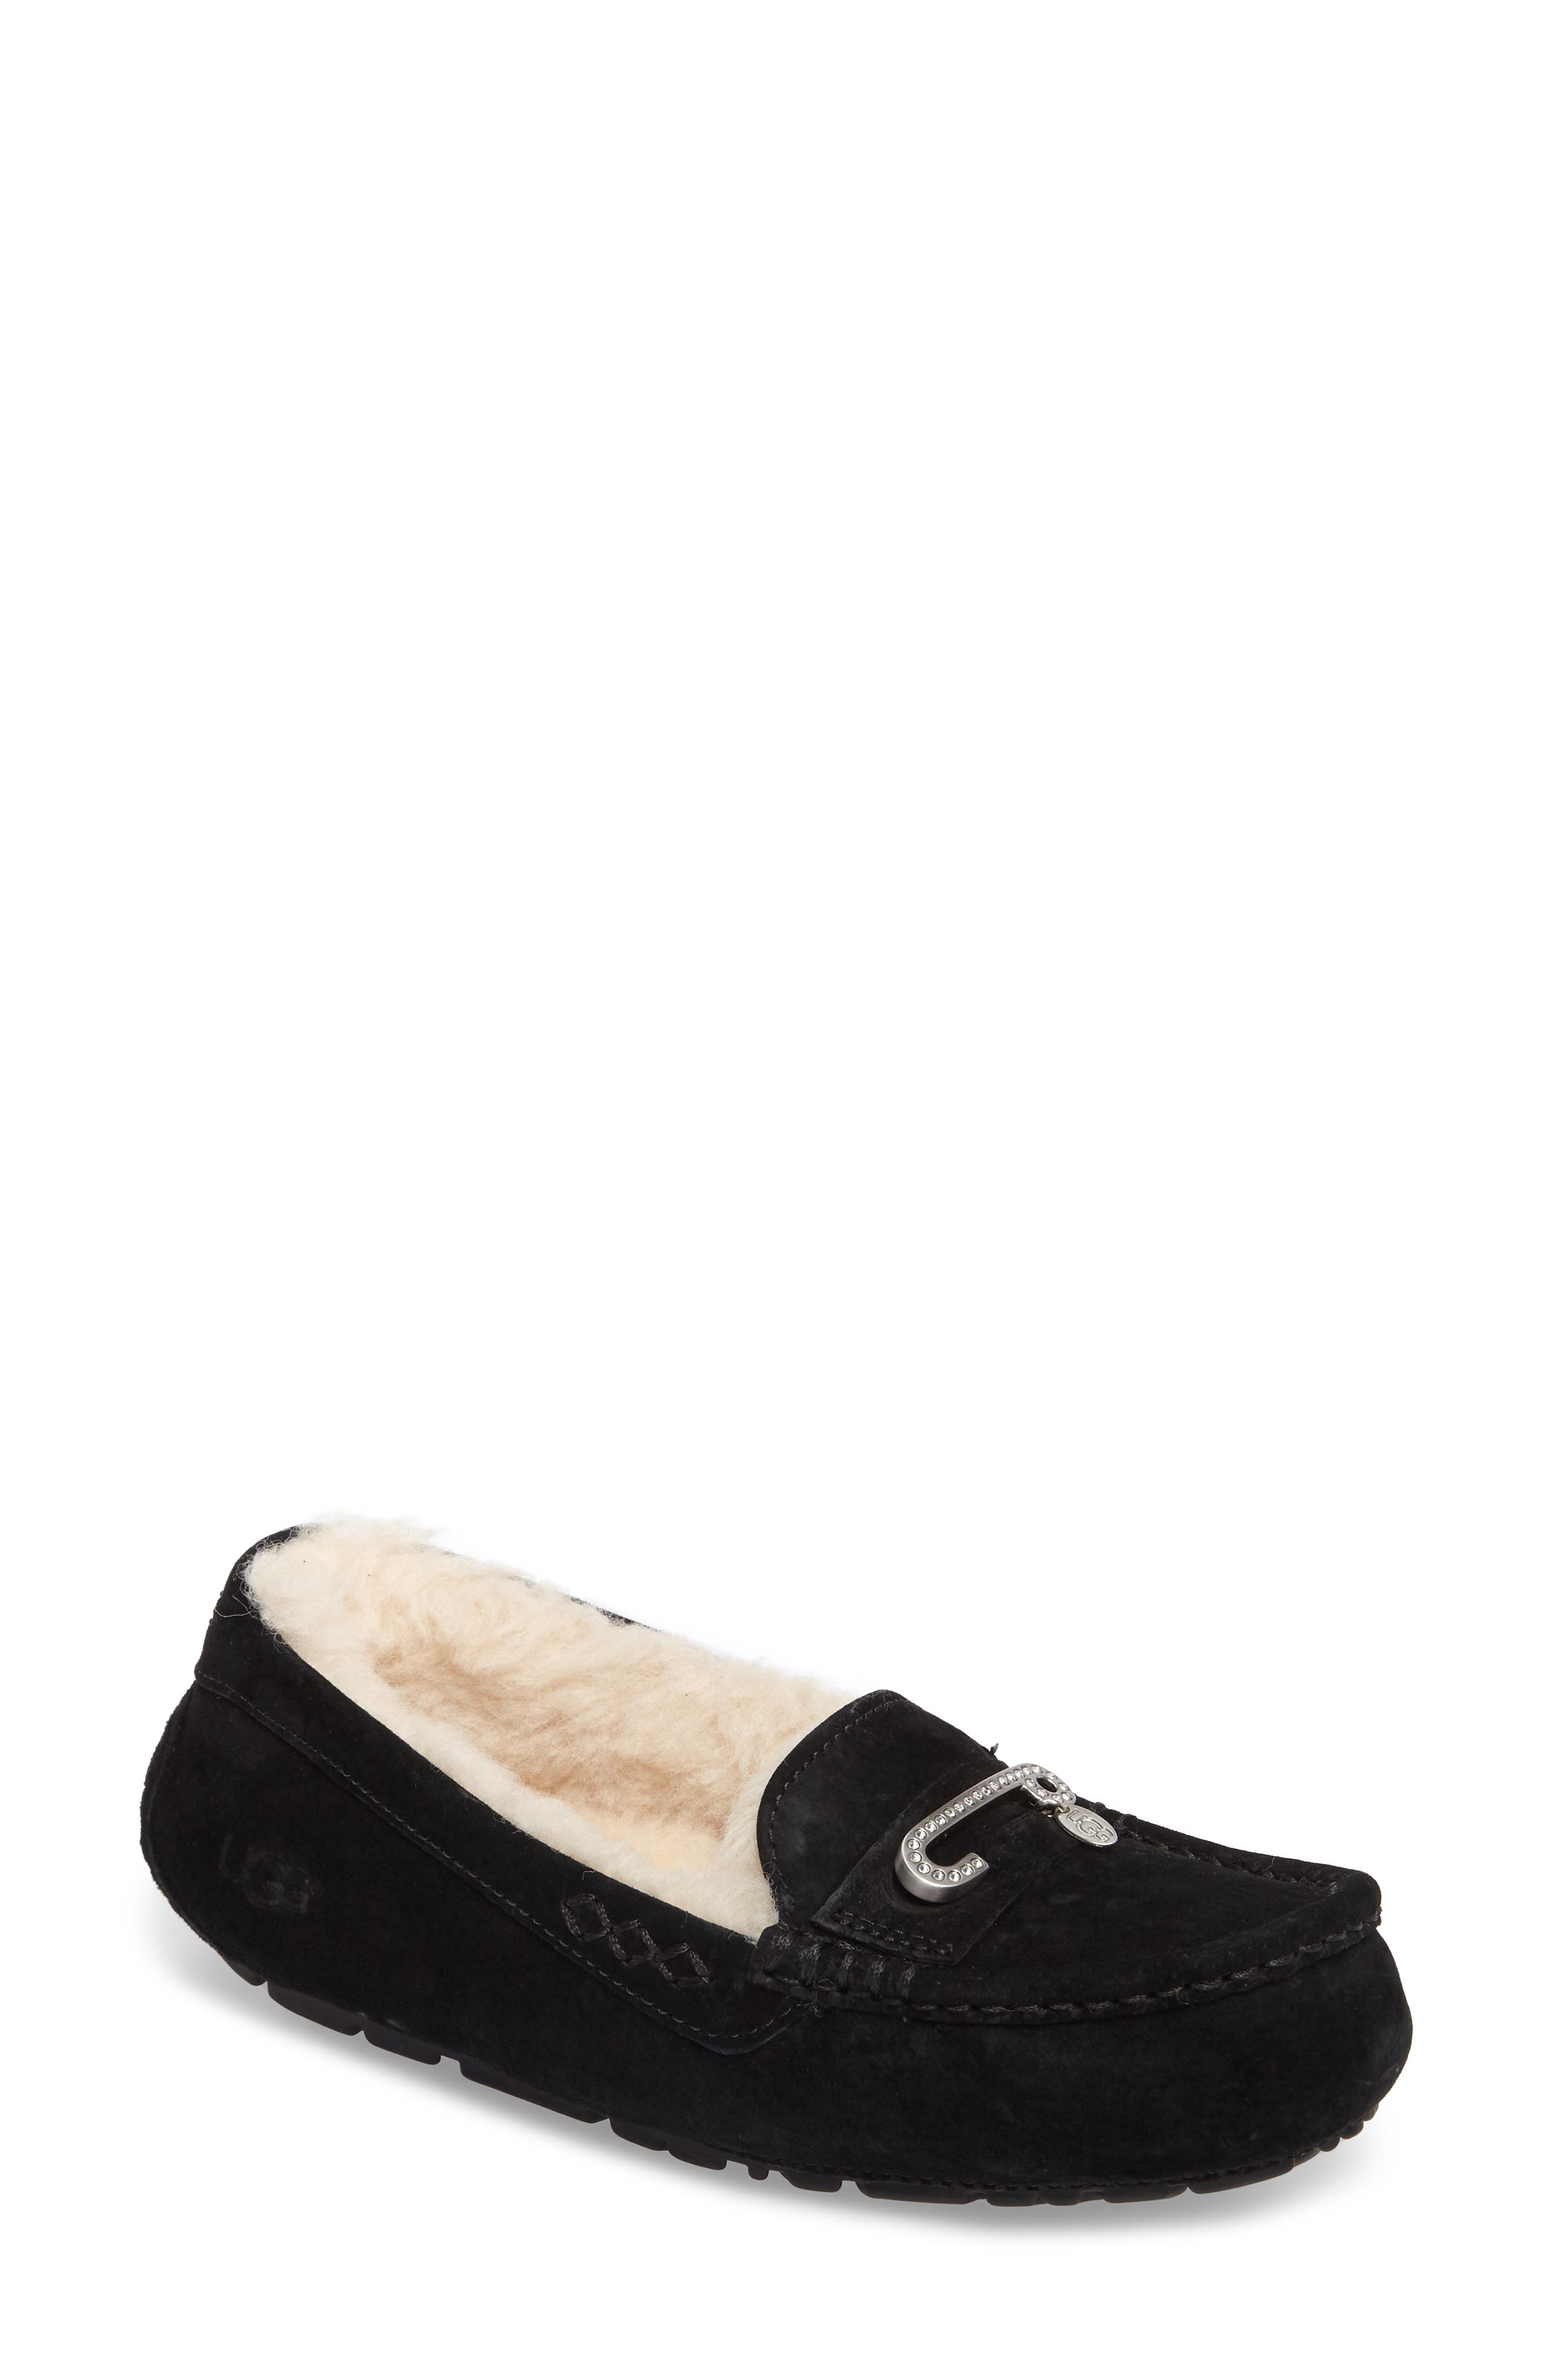 Main Image - UGG® Florencia Water Resistant Silkee™ Suede Slipper (Women)